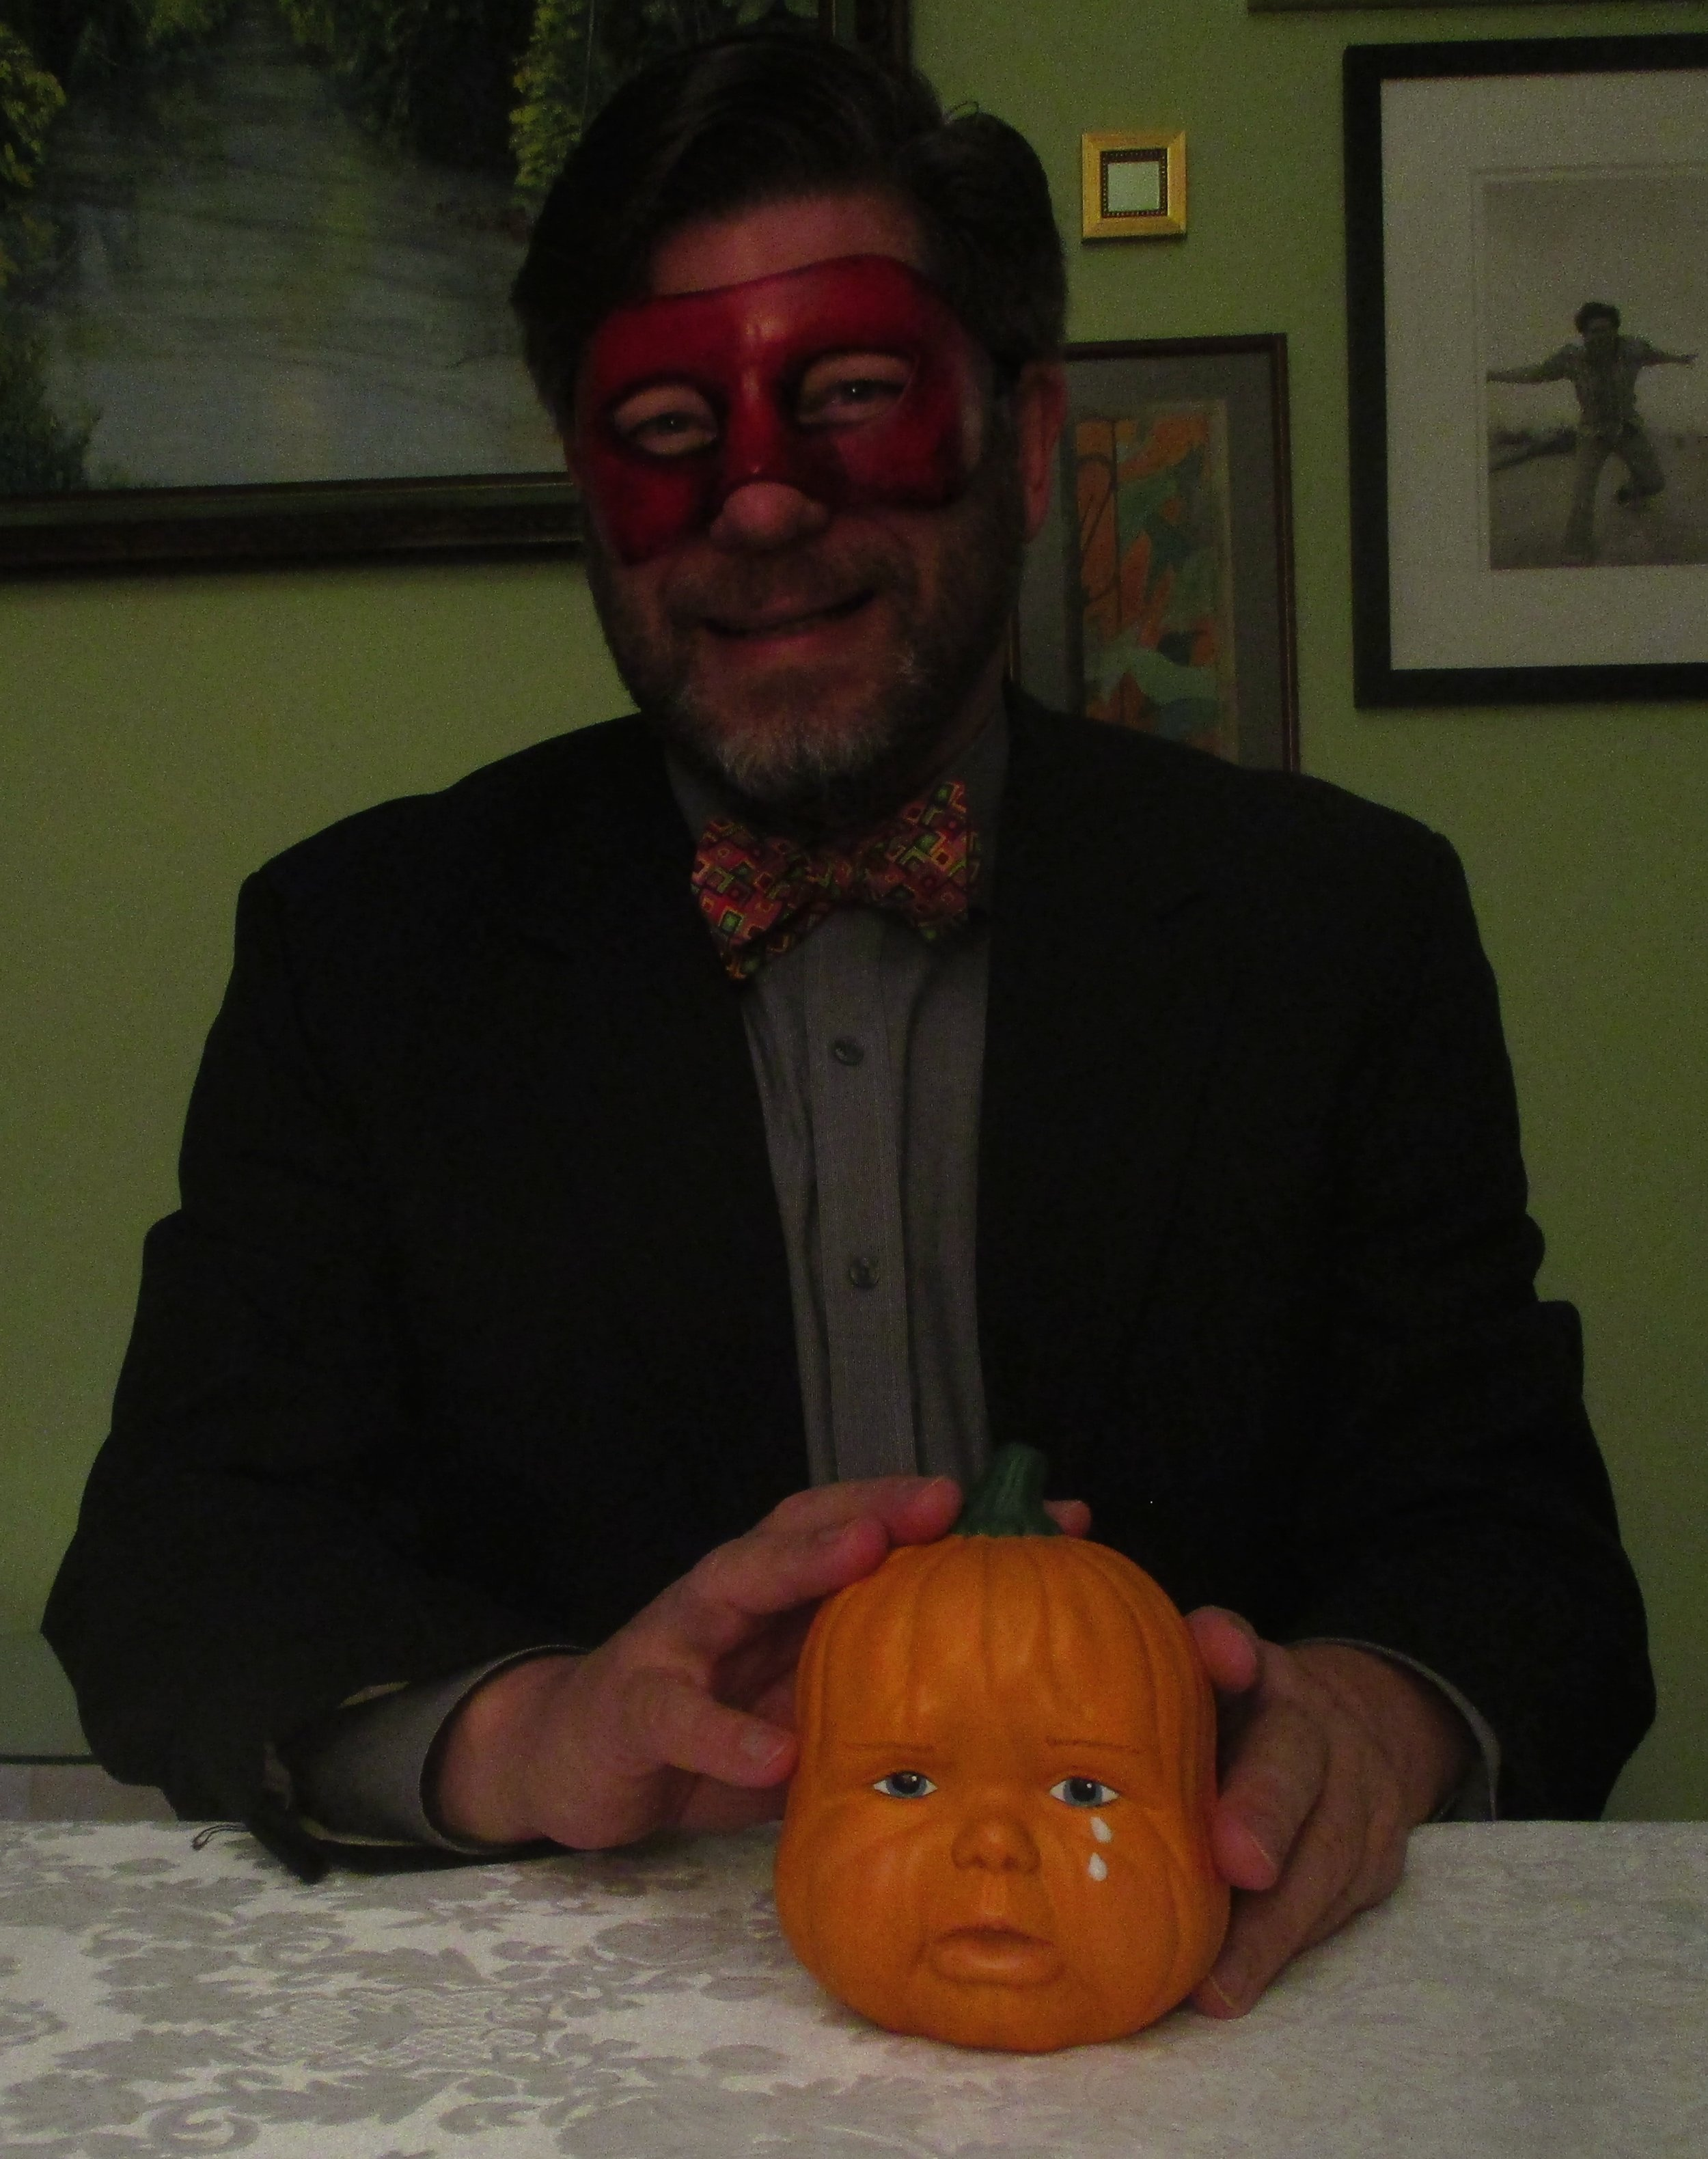 With Weeping Baby Pumpkin Head I at happier Hallowe'ens.